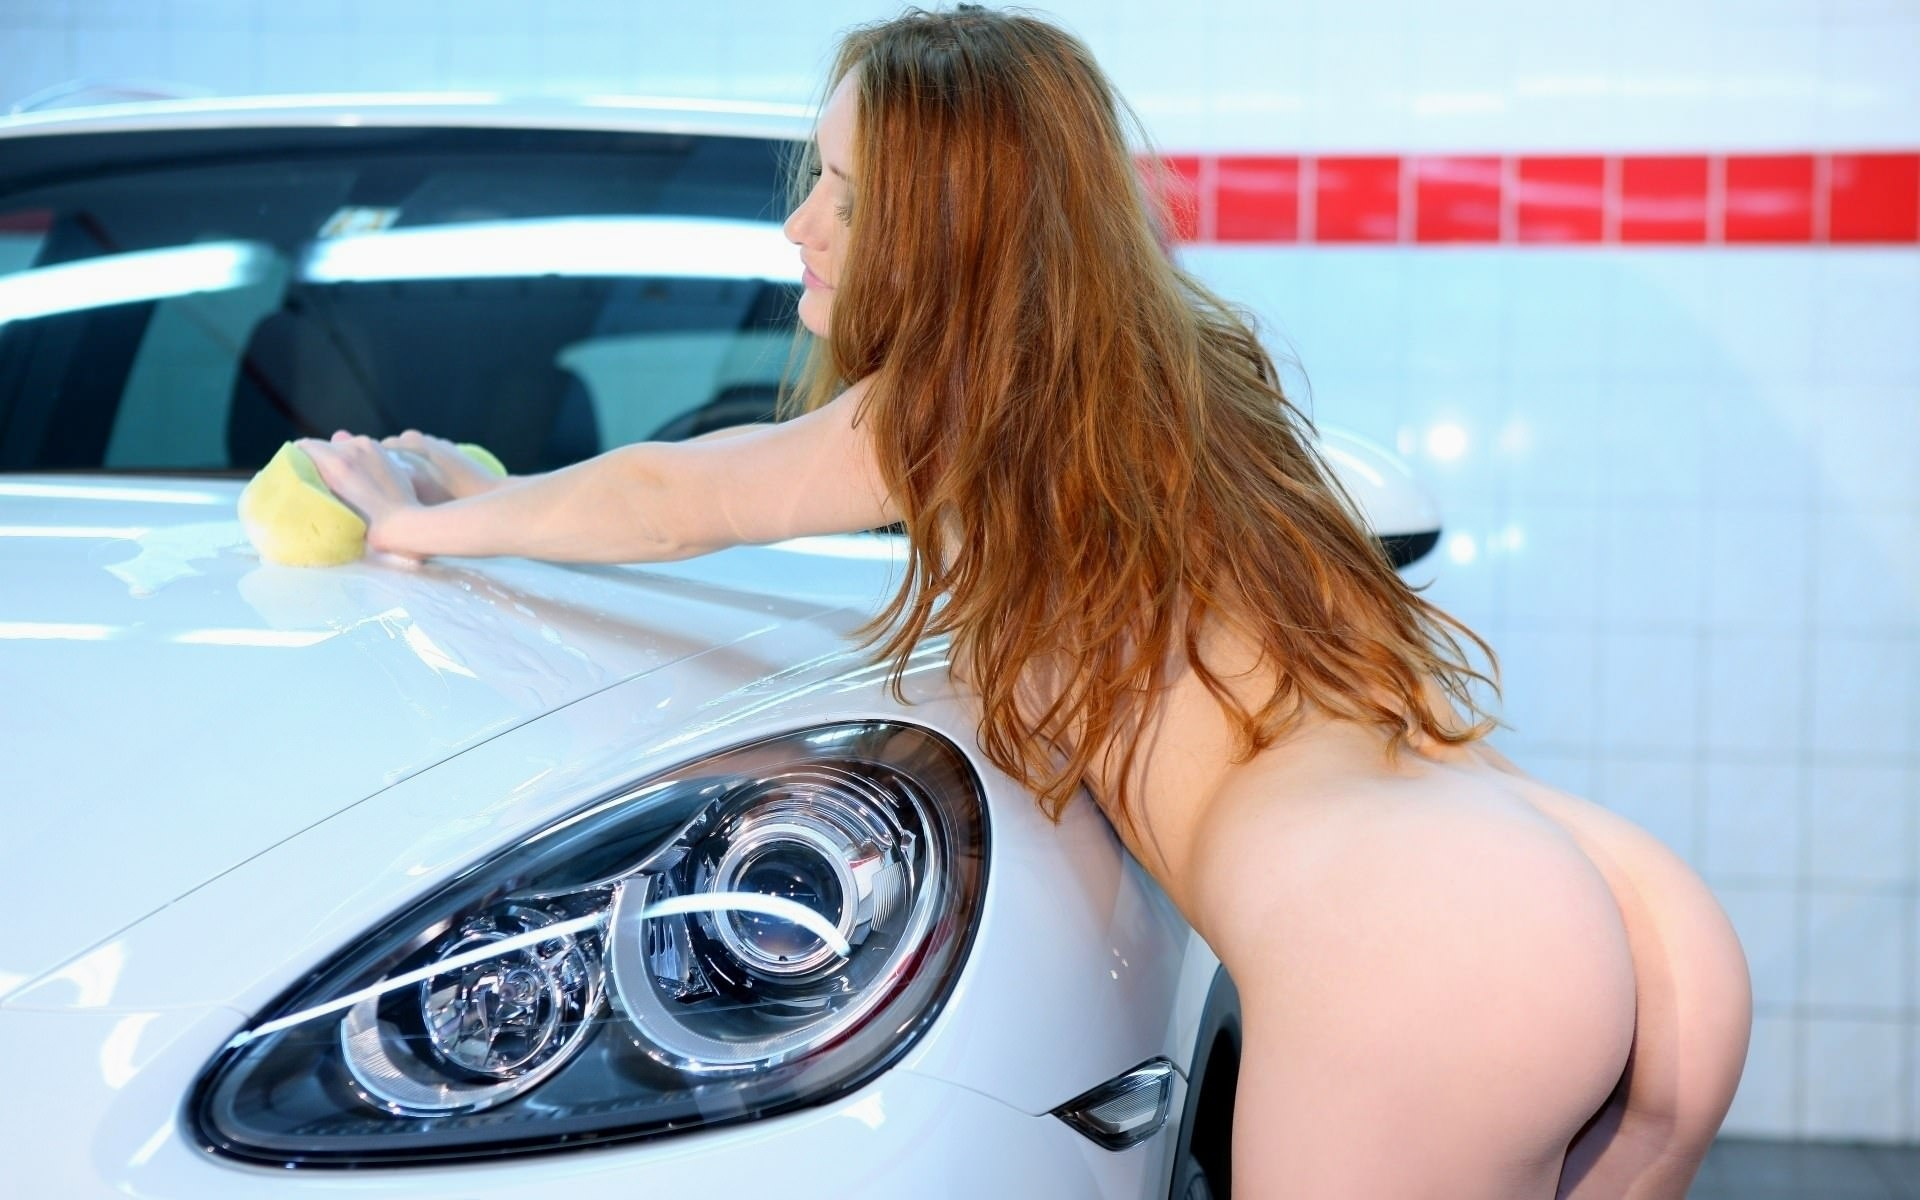 Naked Girls Washing Car Nude